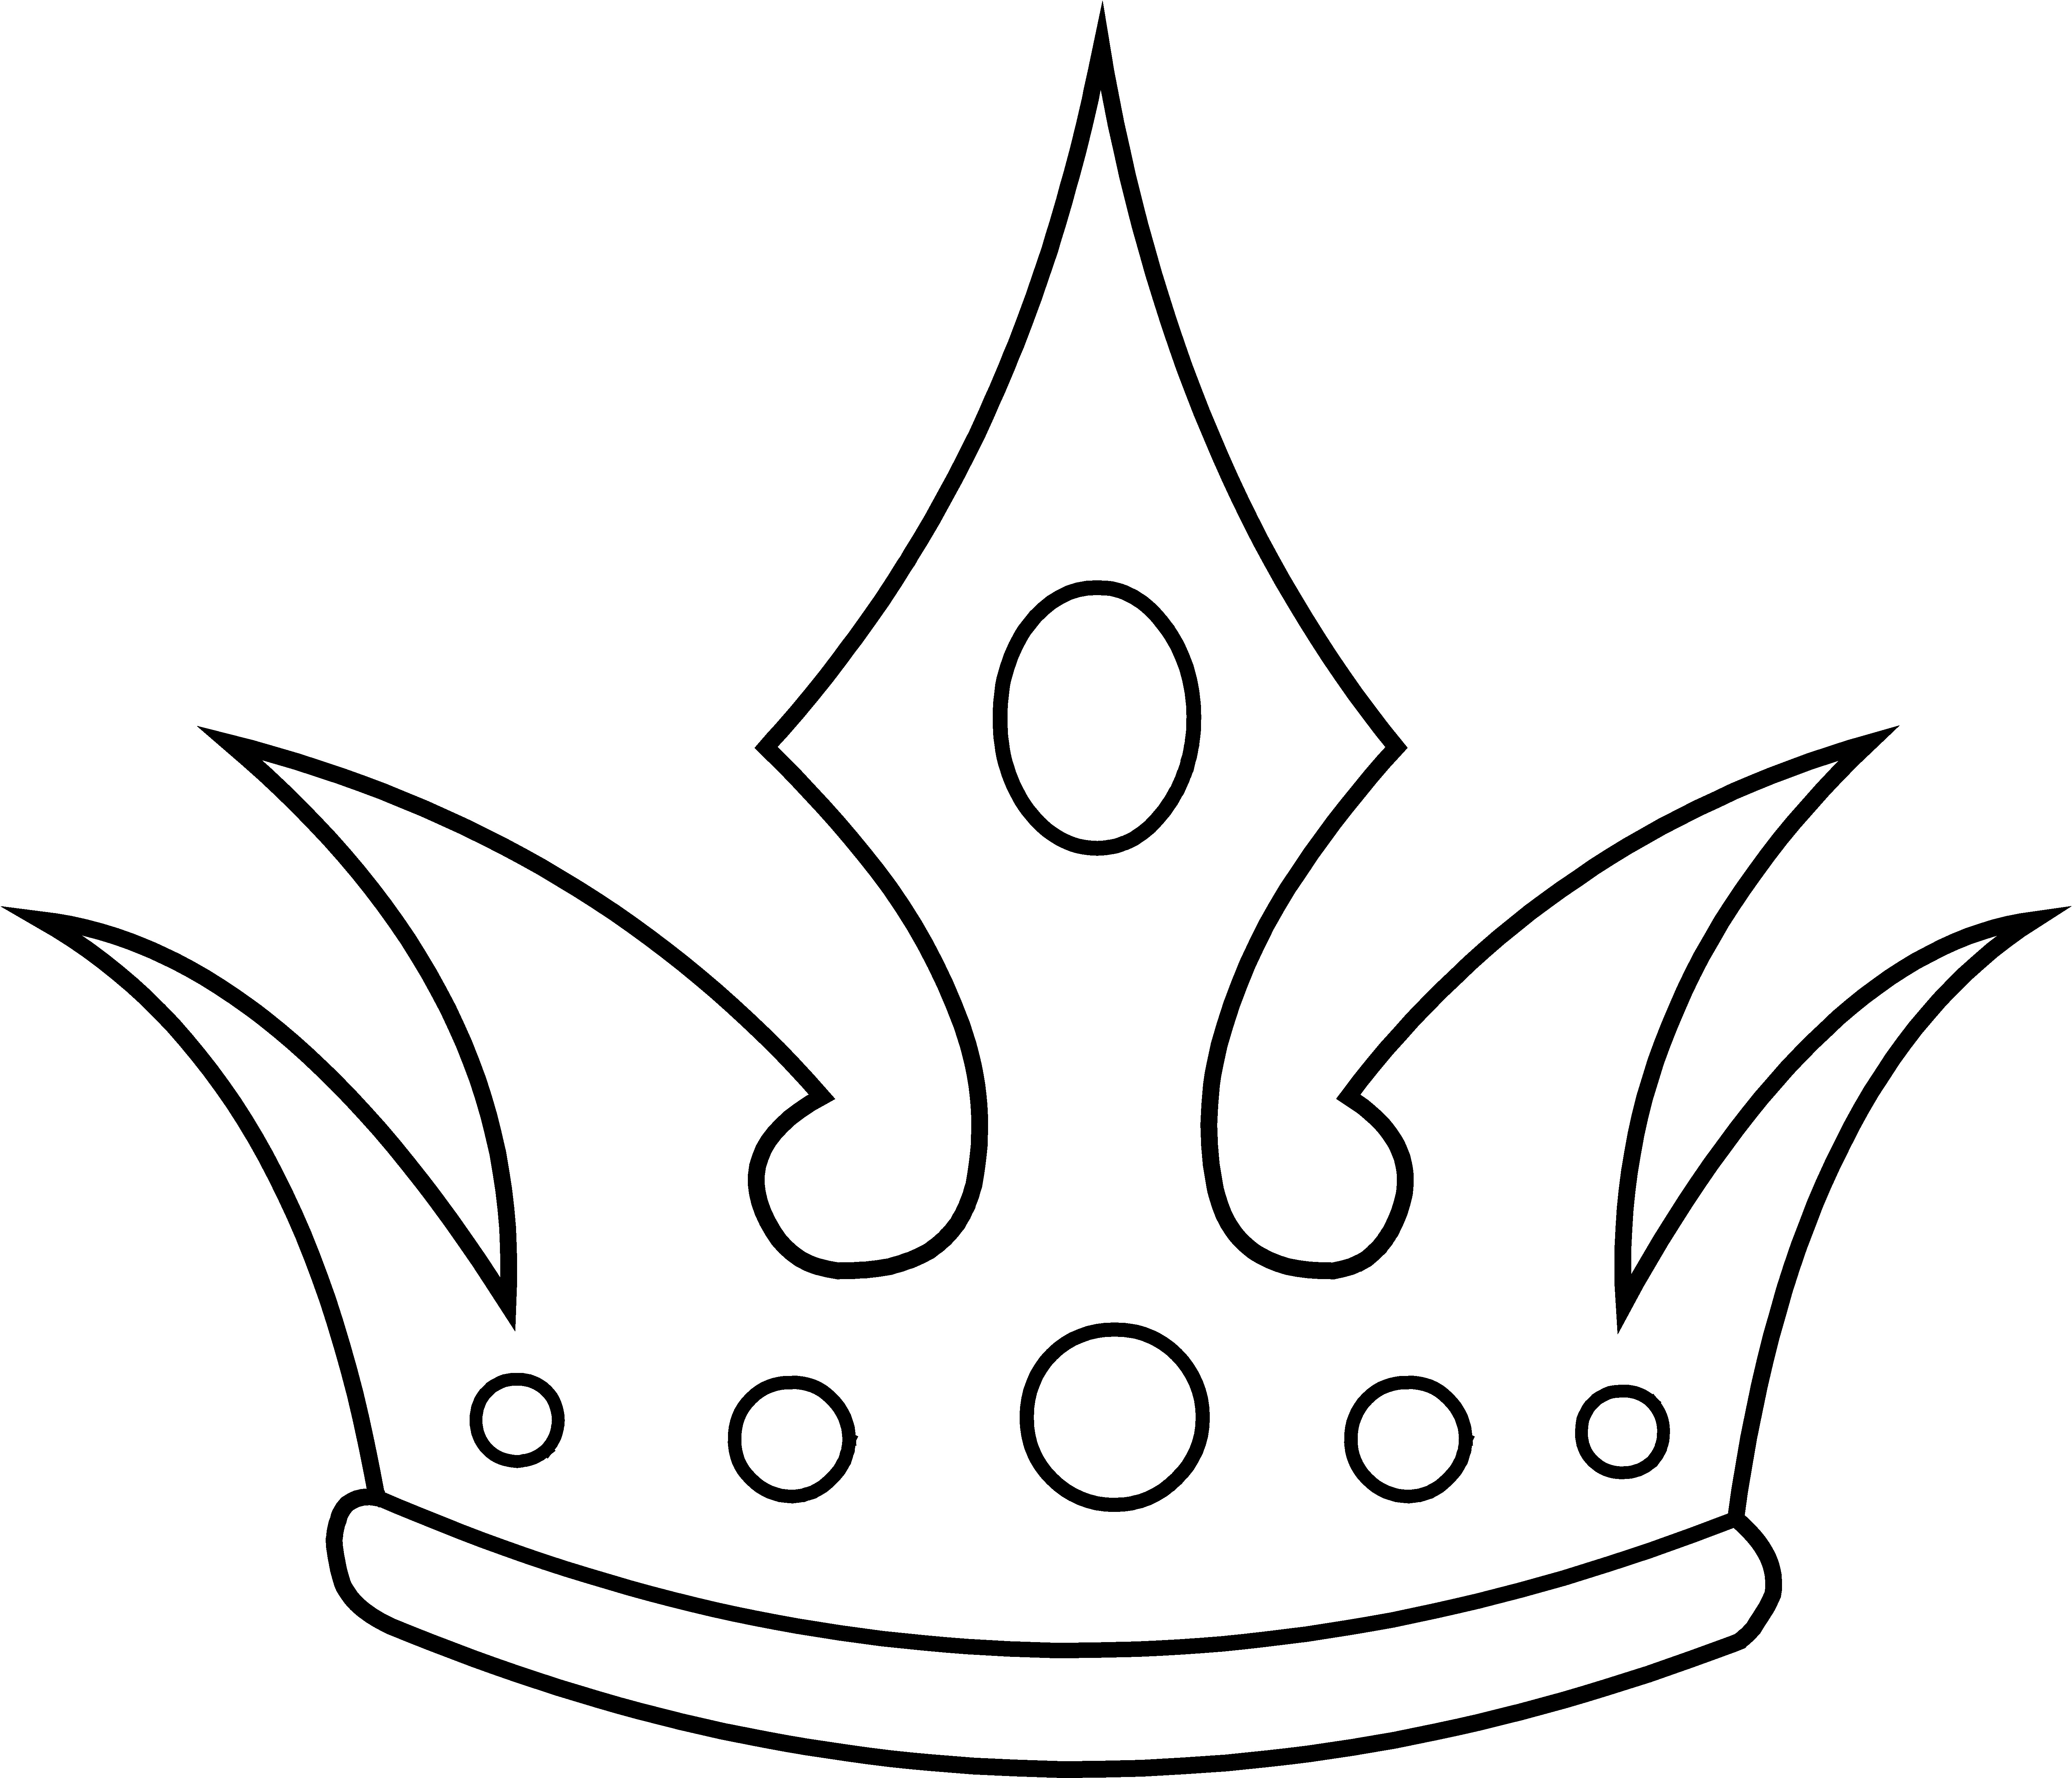 Princess Crown Clip Art Black And White King Crown Drawing Crown Drawing Crown Clip Art